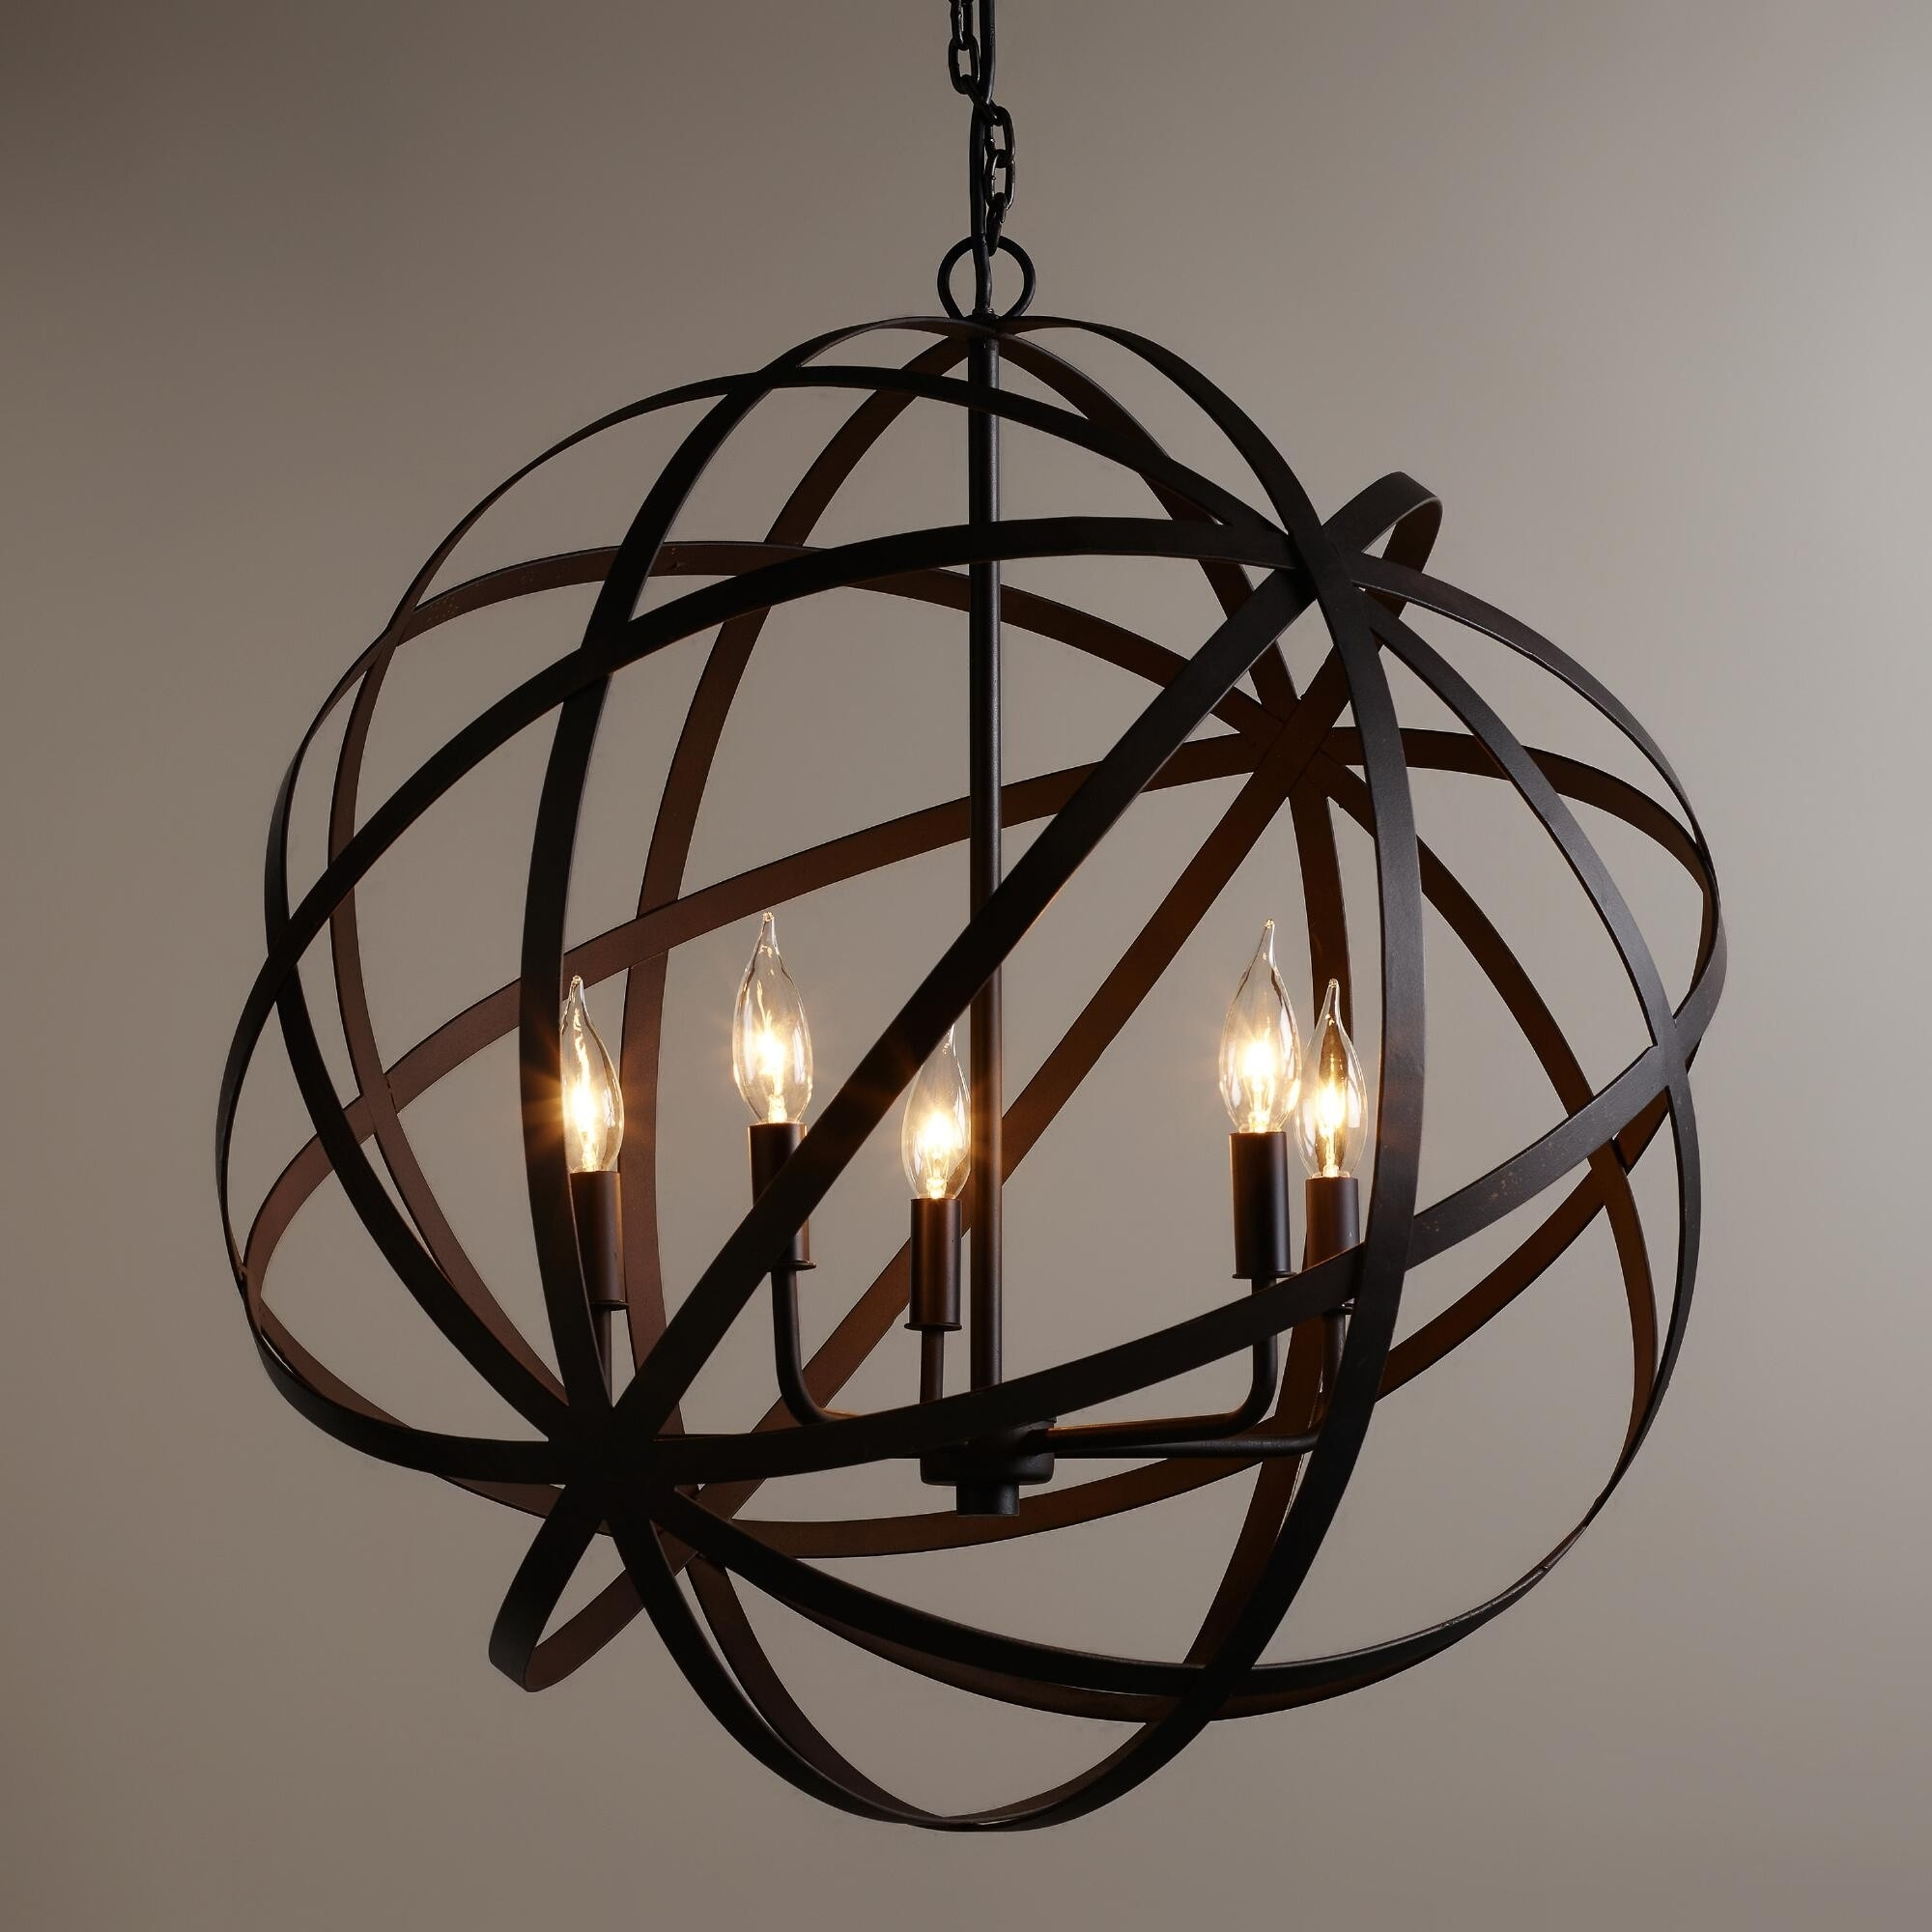 2019 Extra Large Outdoor Chandeliers : Lamp World With Regard To Contemporary Large Chandeliers (View 9 of 20)